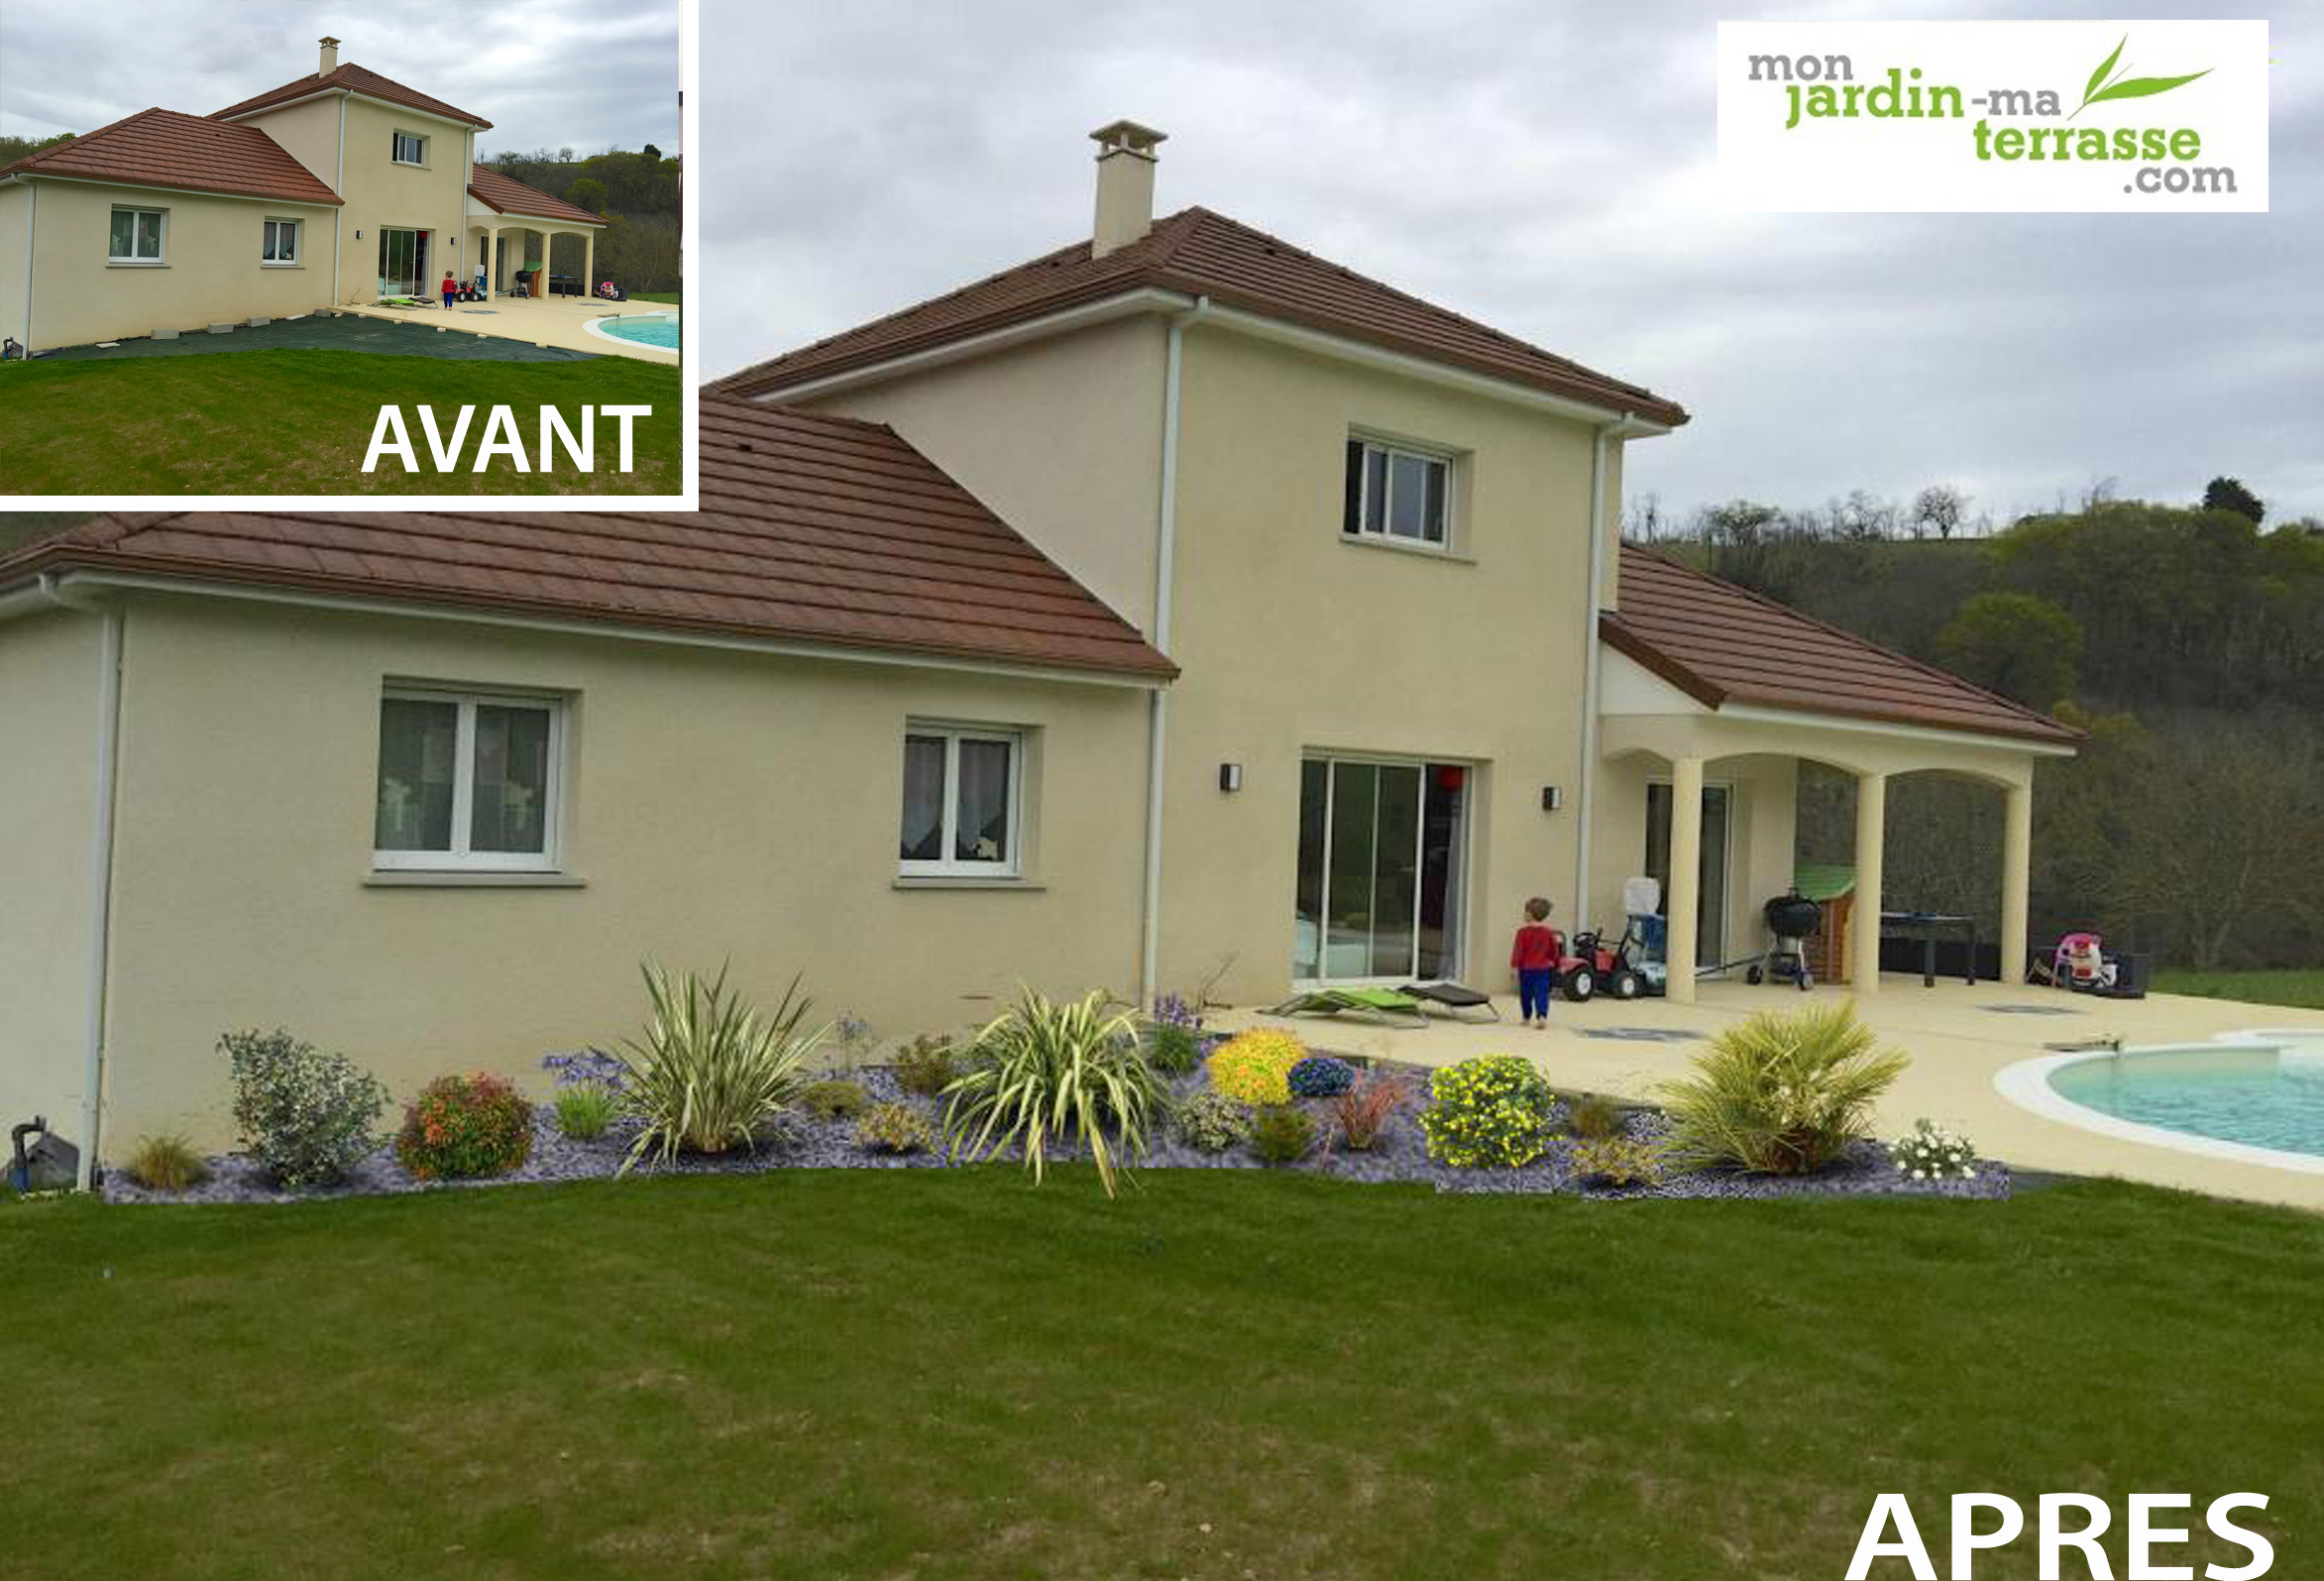 Am nagement ext rieur devant une maison monjardin for Amenagements exterieurs maison